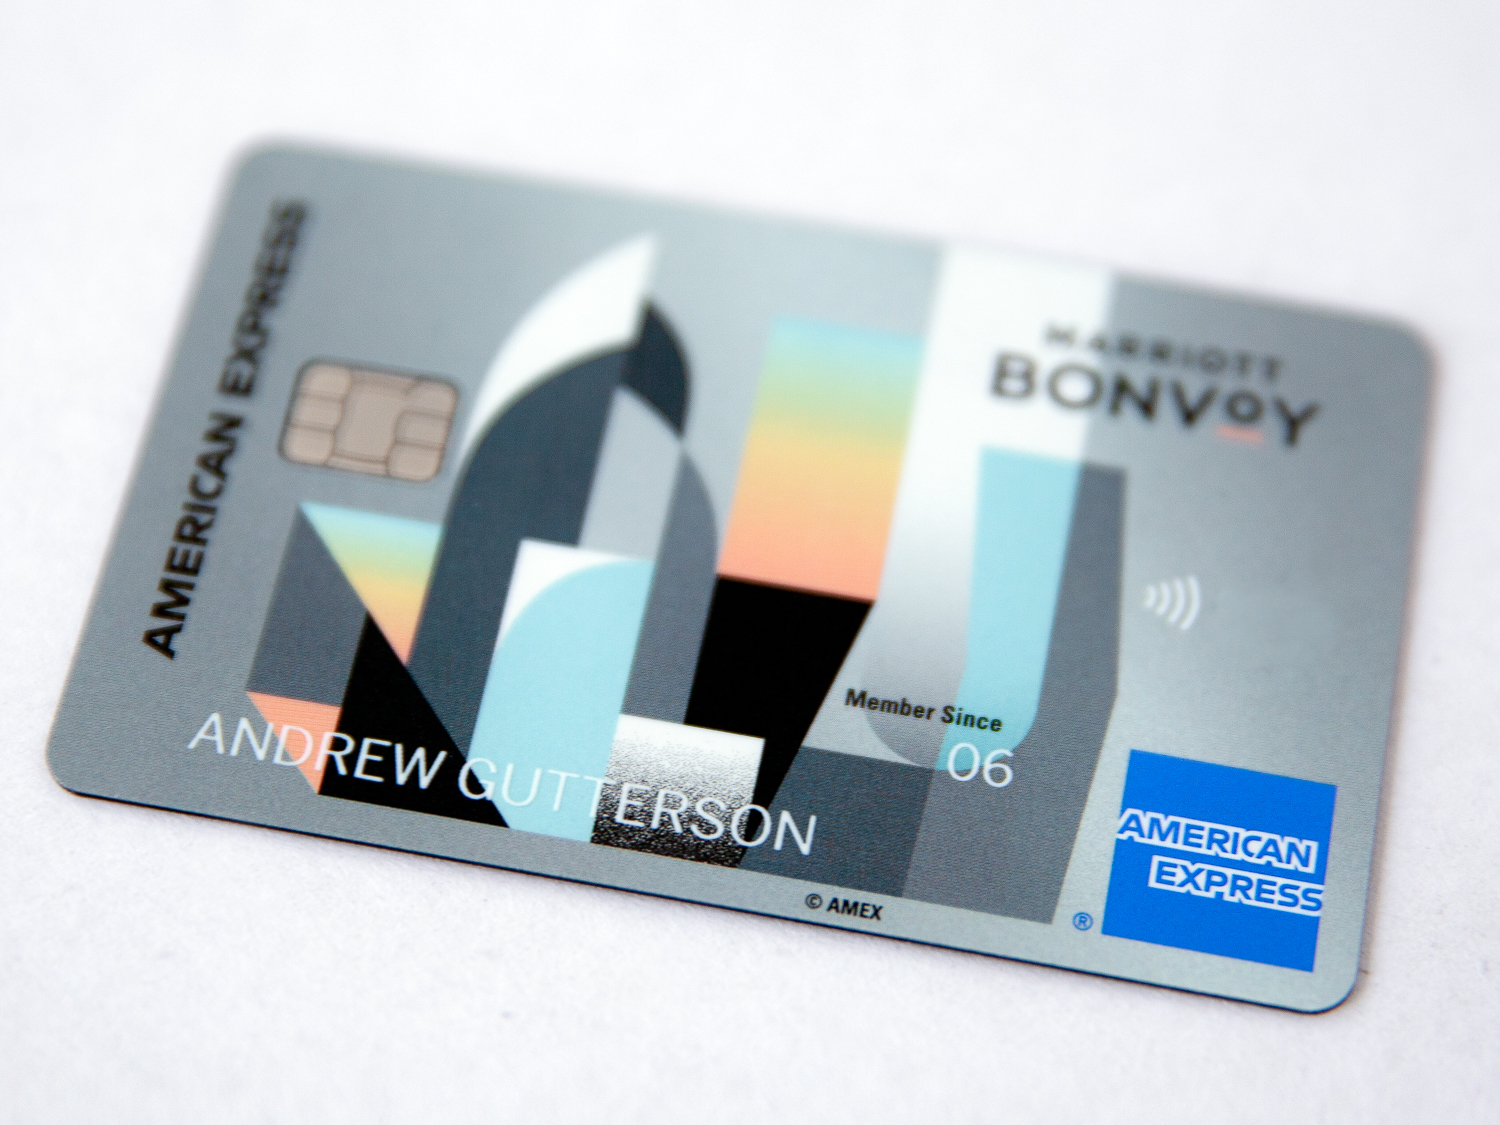 American Express Credit Card design, 2019